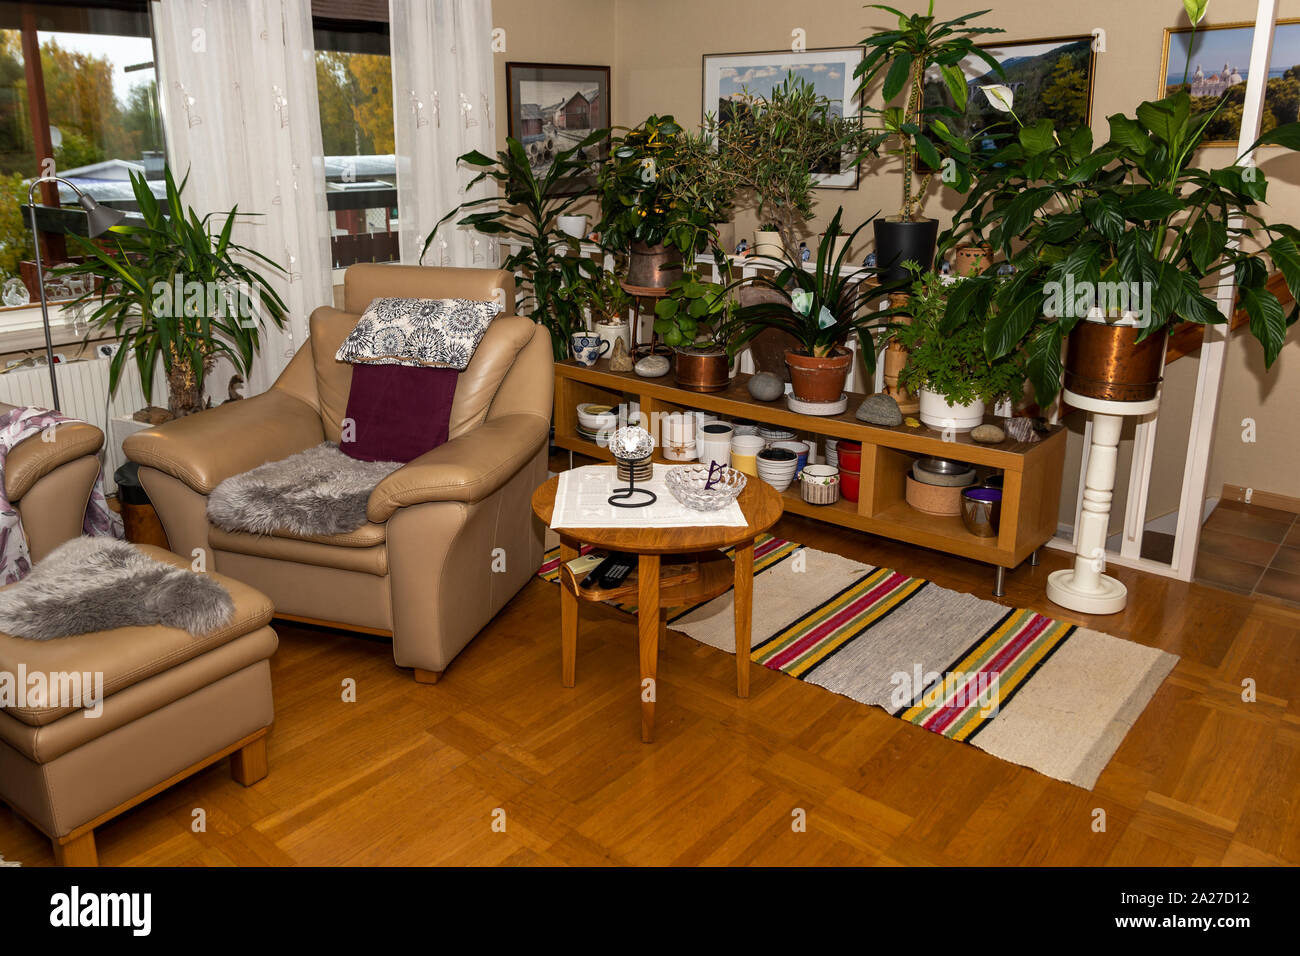 Room with a lot of flowers and green plants, picture from Northern Sweden. Stock Photo